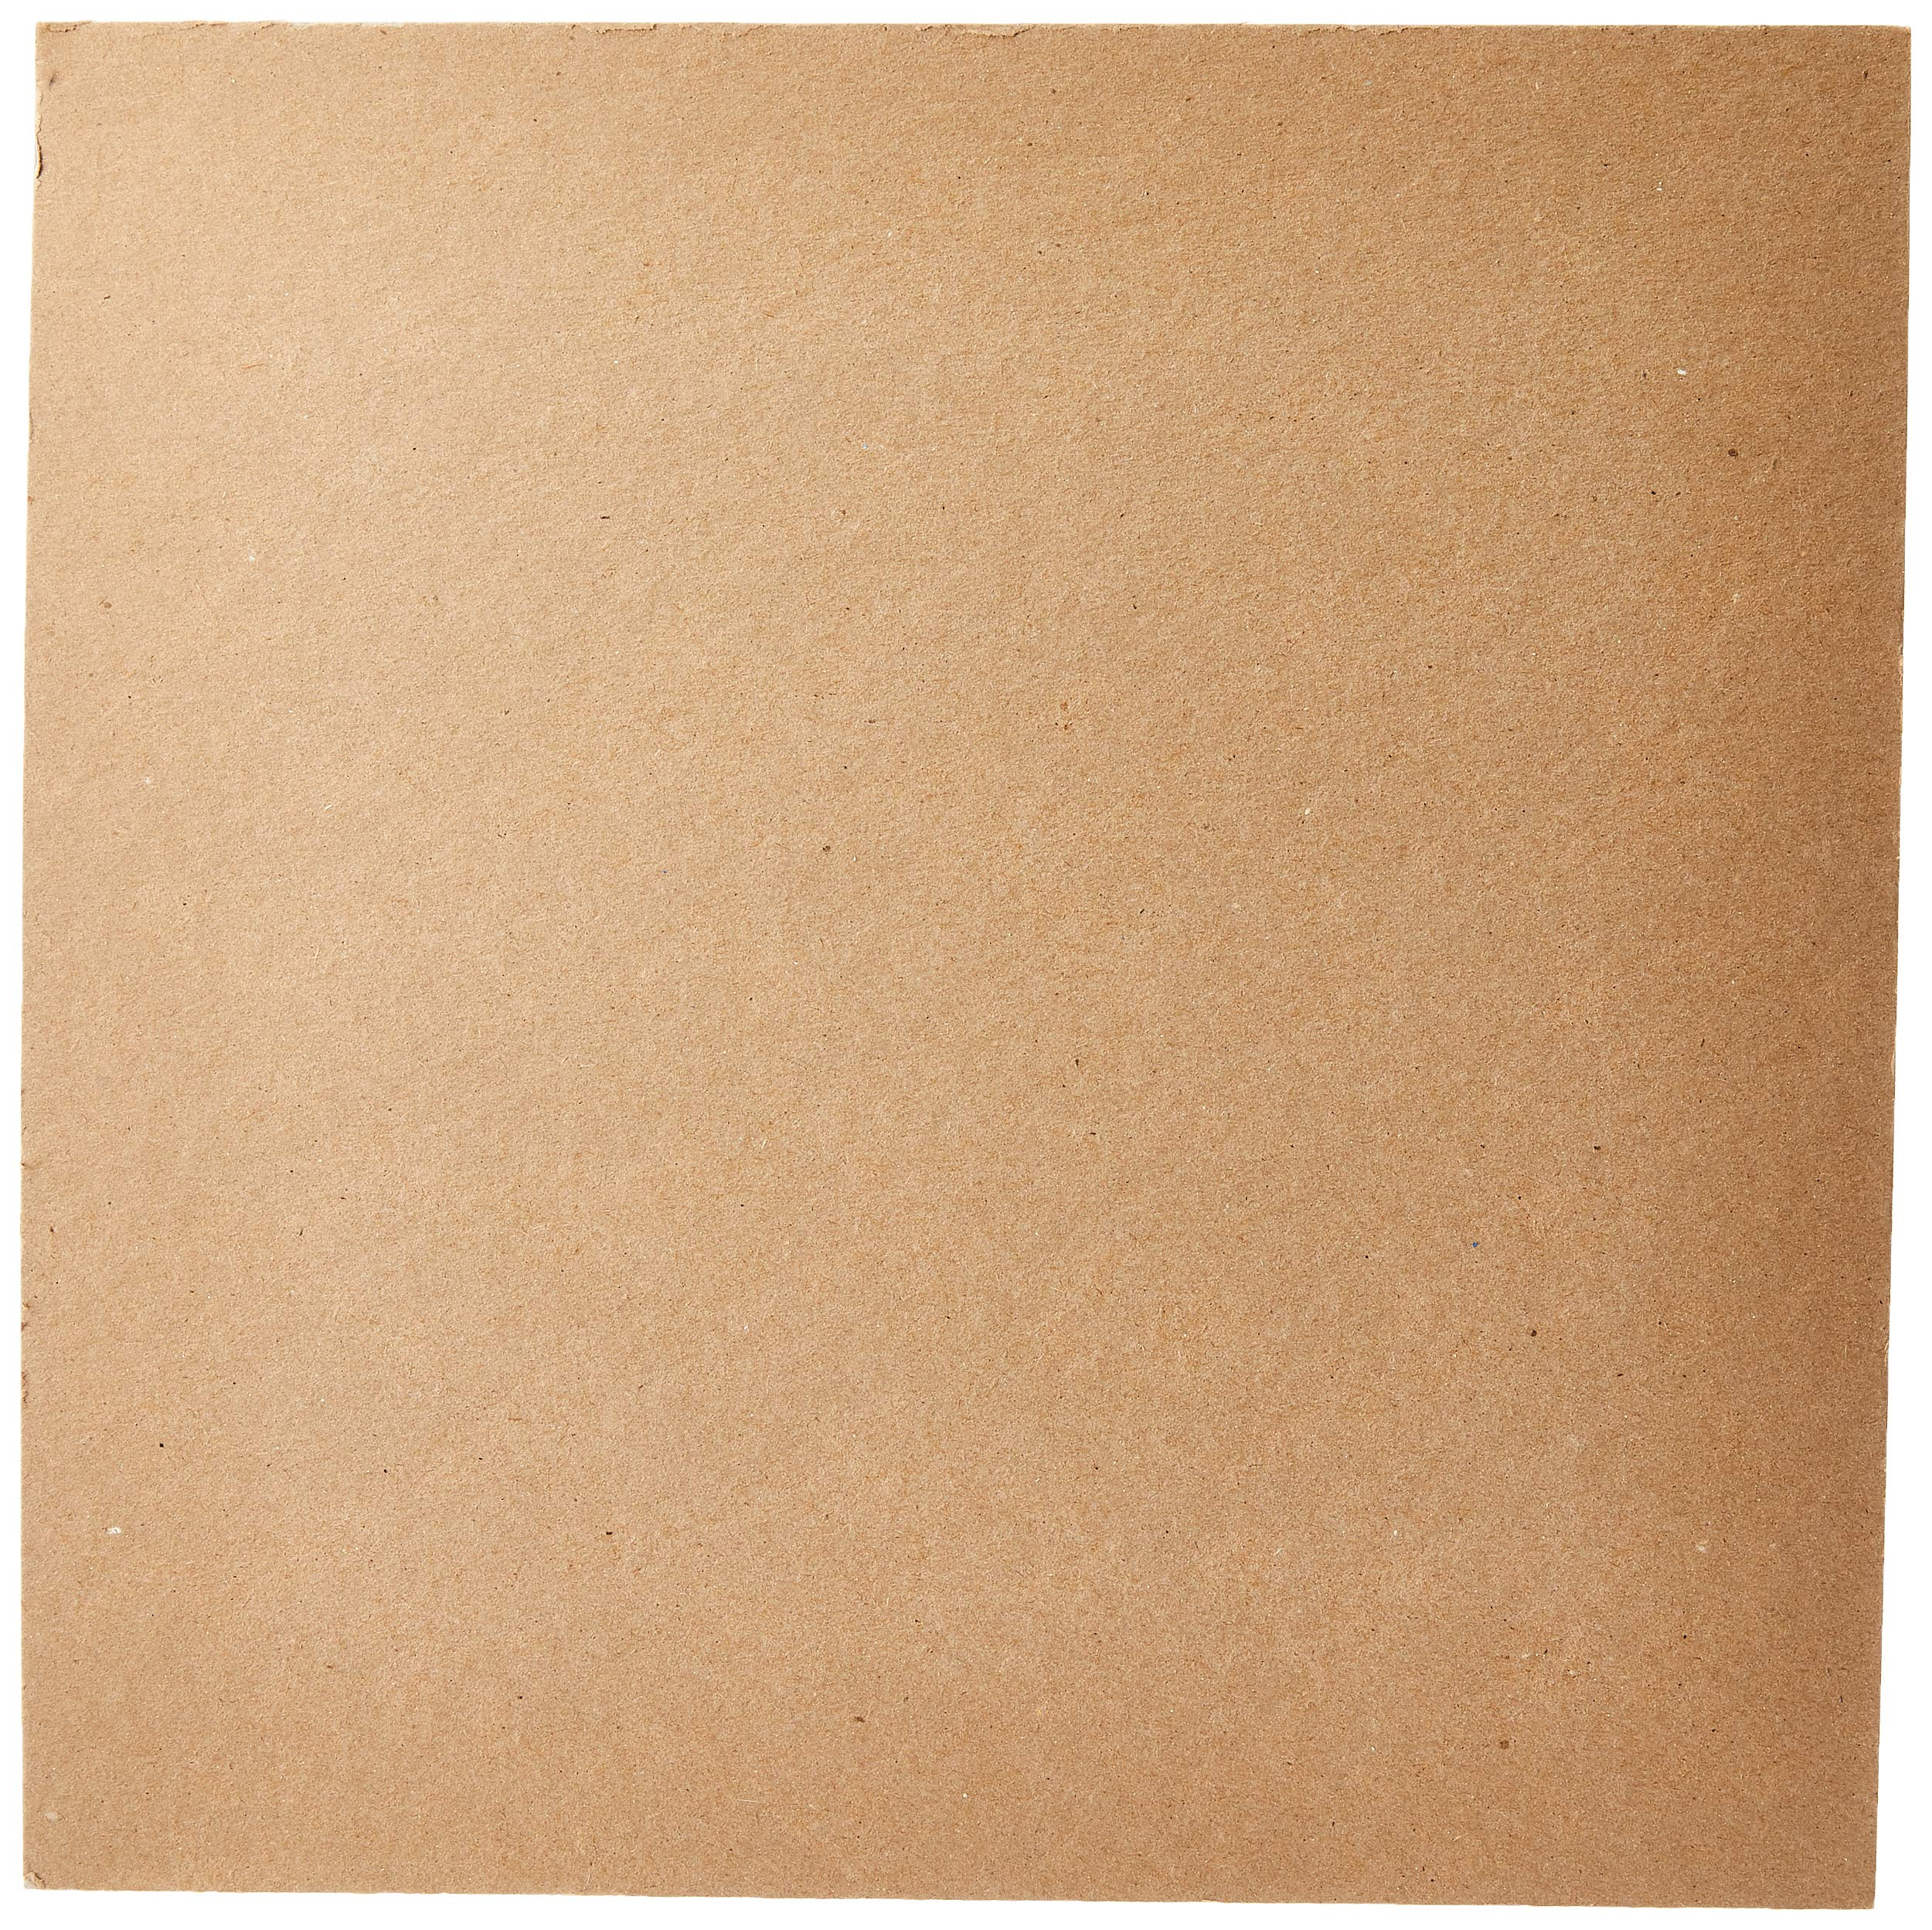 """Grafix Medium Weight Acid-Free 0.057"""" Chipboard Sheets, Create Three-Dimensional Embellishments for Cards, Papercrafts, Mixed Media, Home Décor, and More, 12 x 12, Natural, 25 Count"""